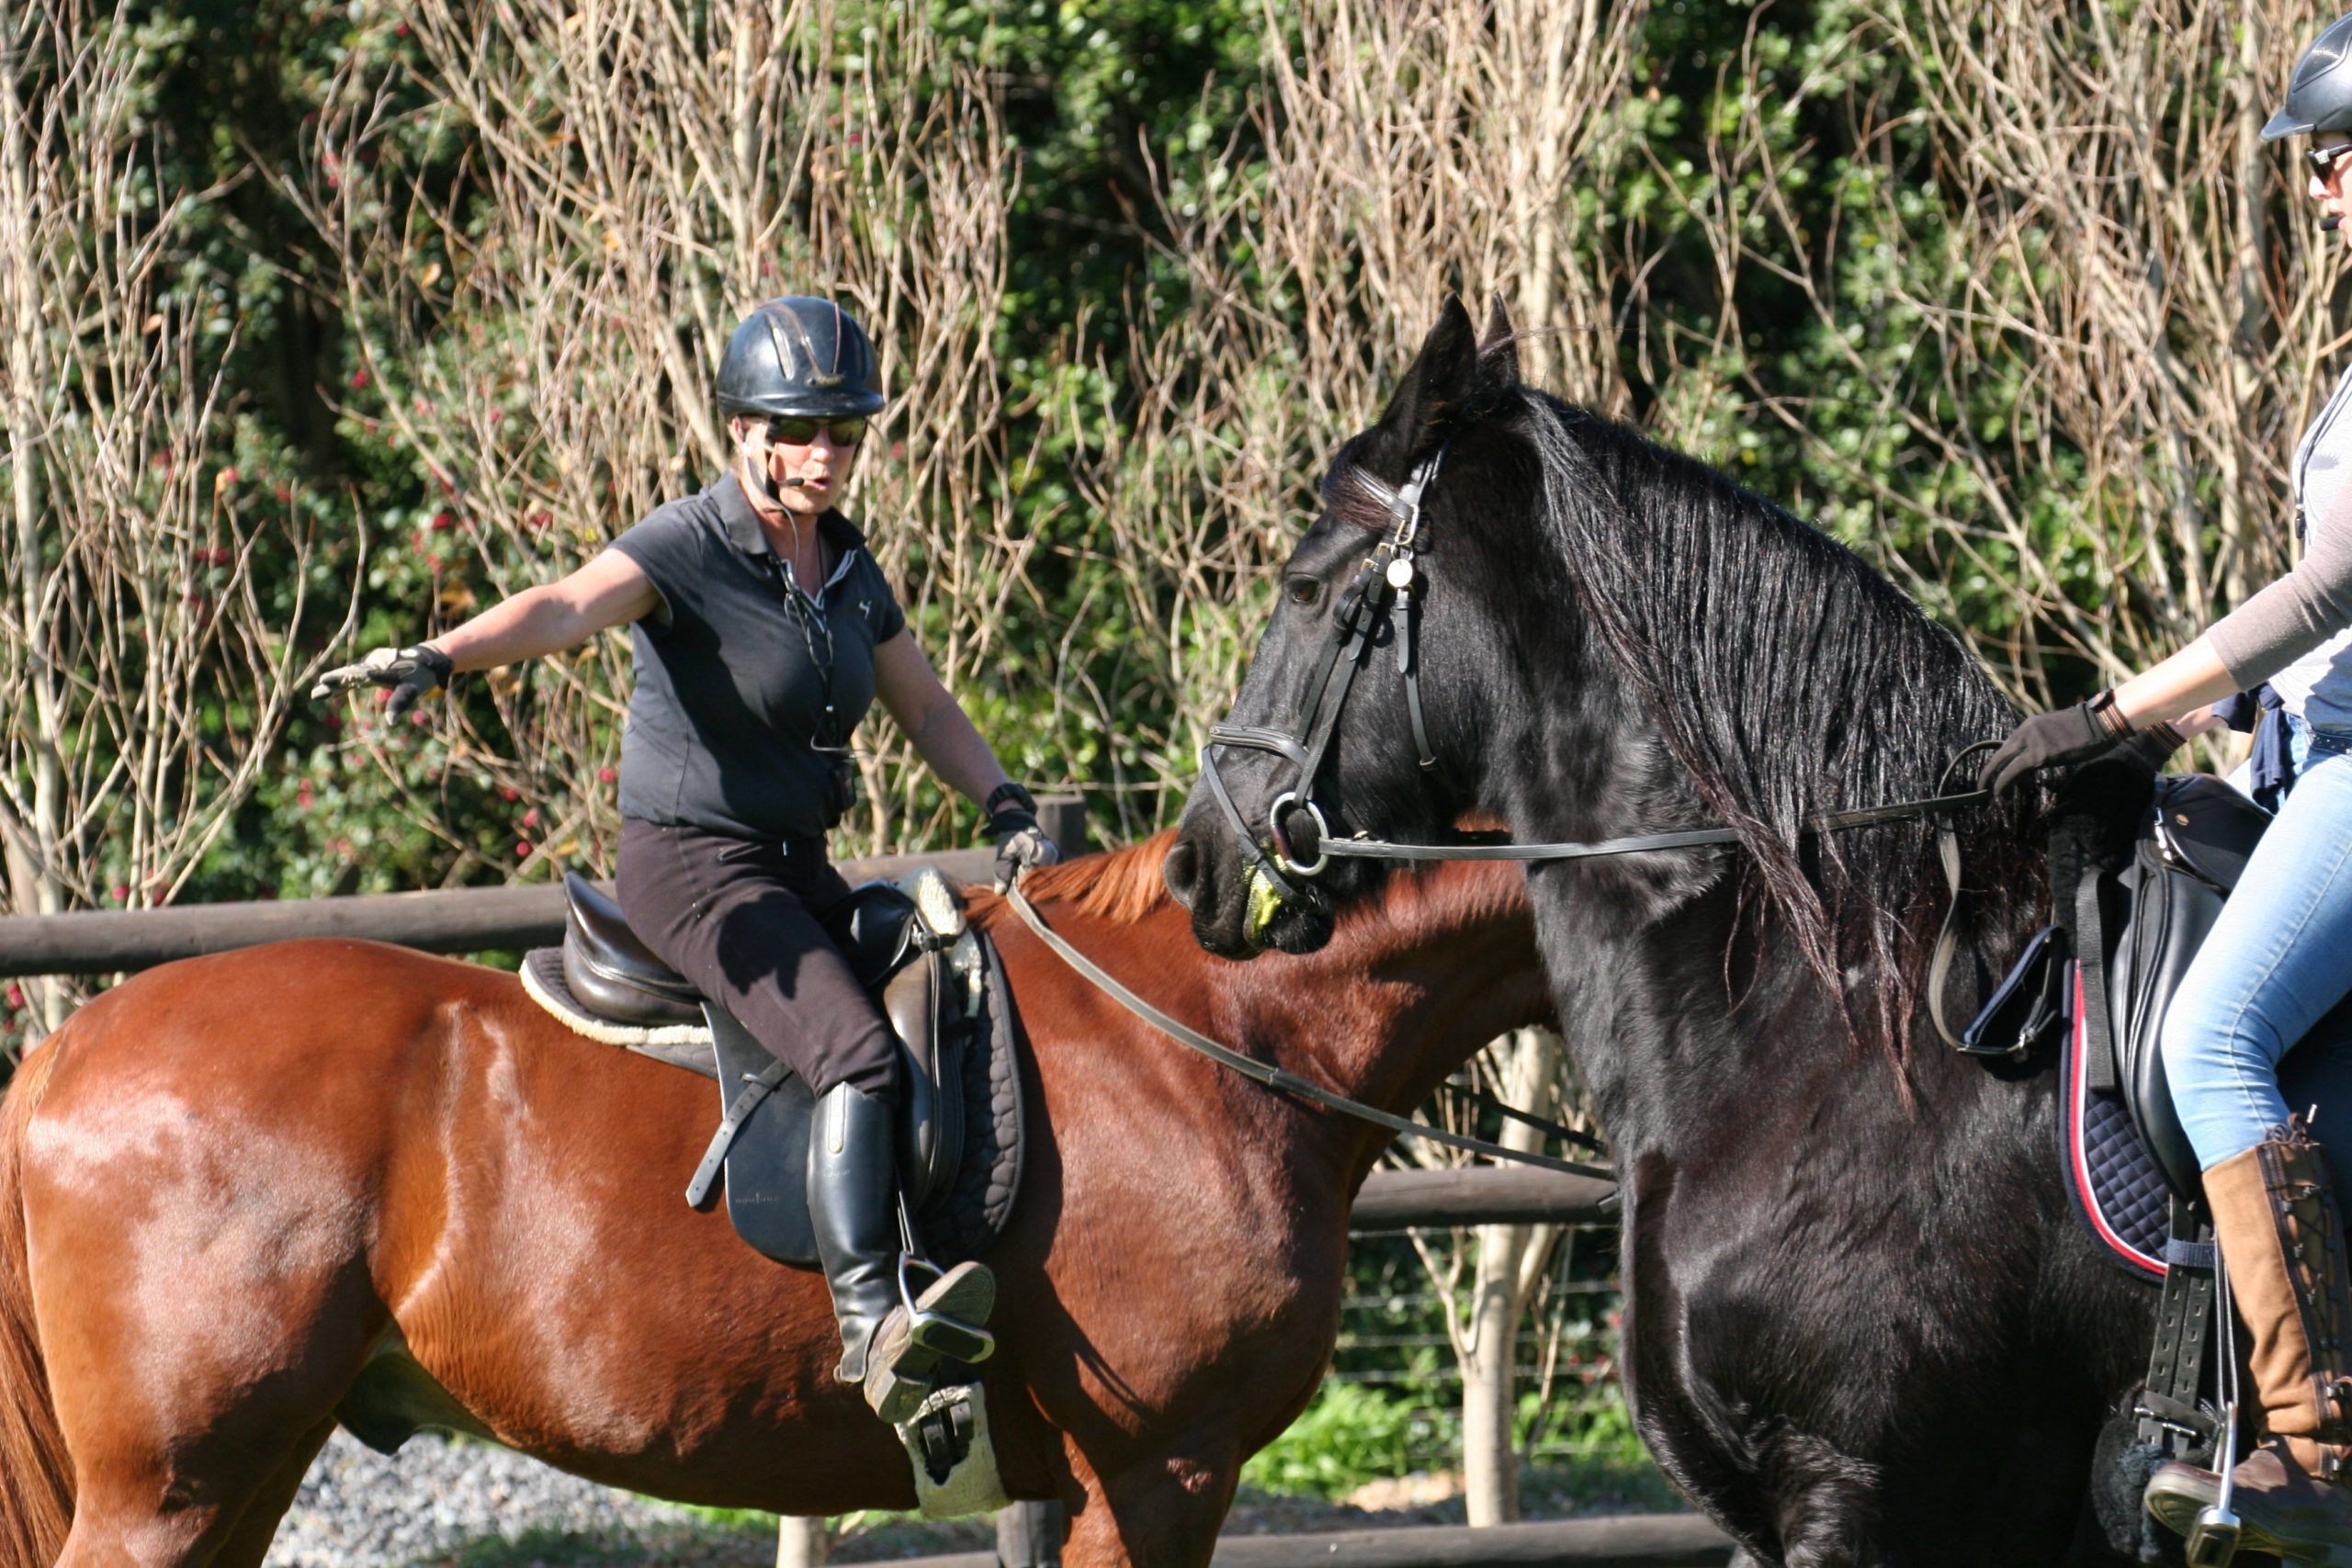 equestrian wireless training system giving instructions